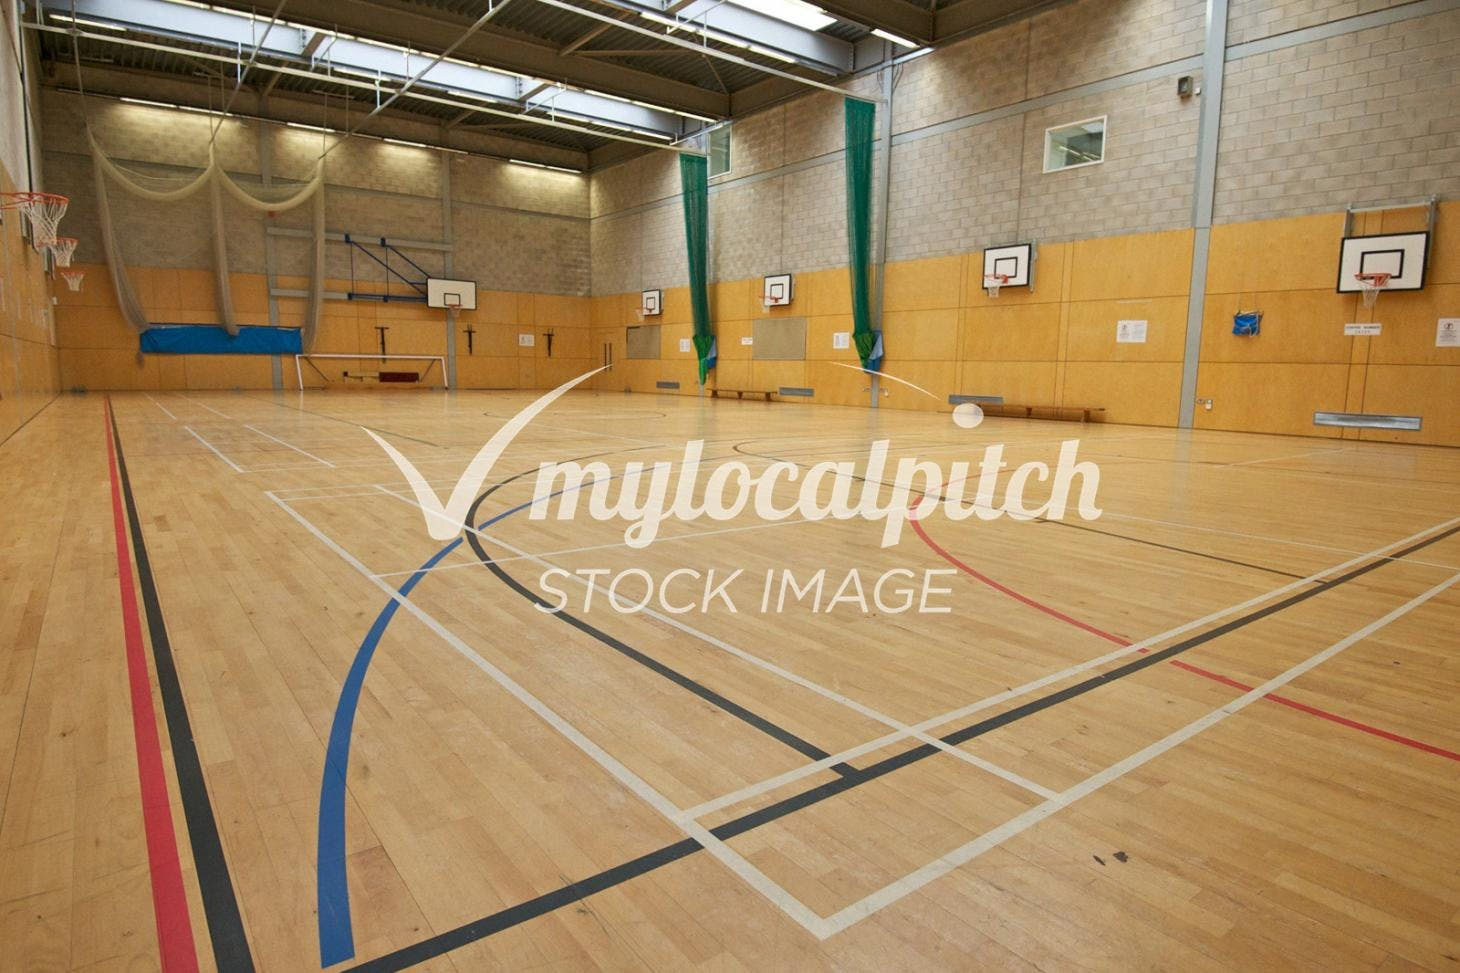 Eastbrook School Indoor basketball court